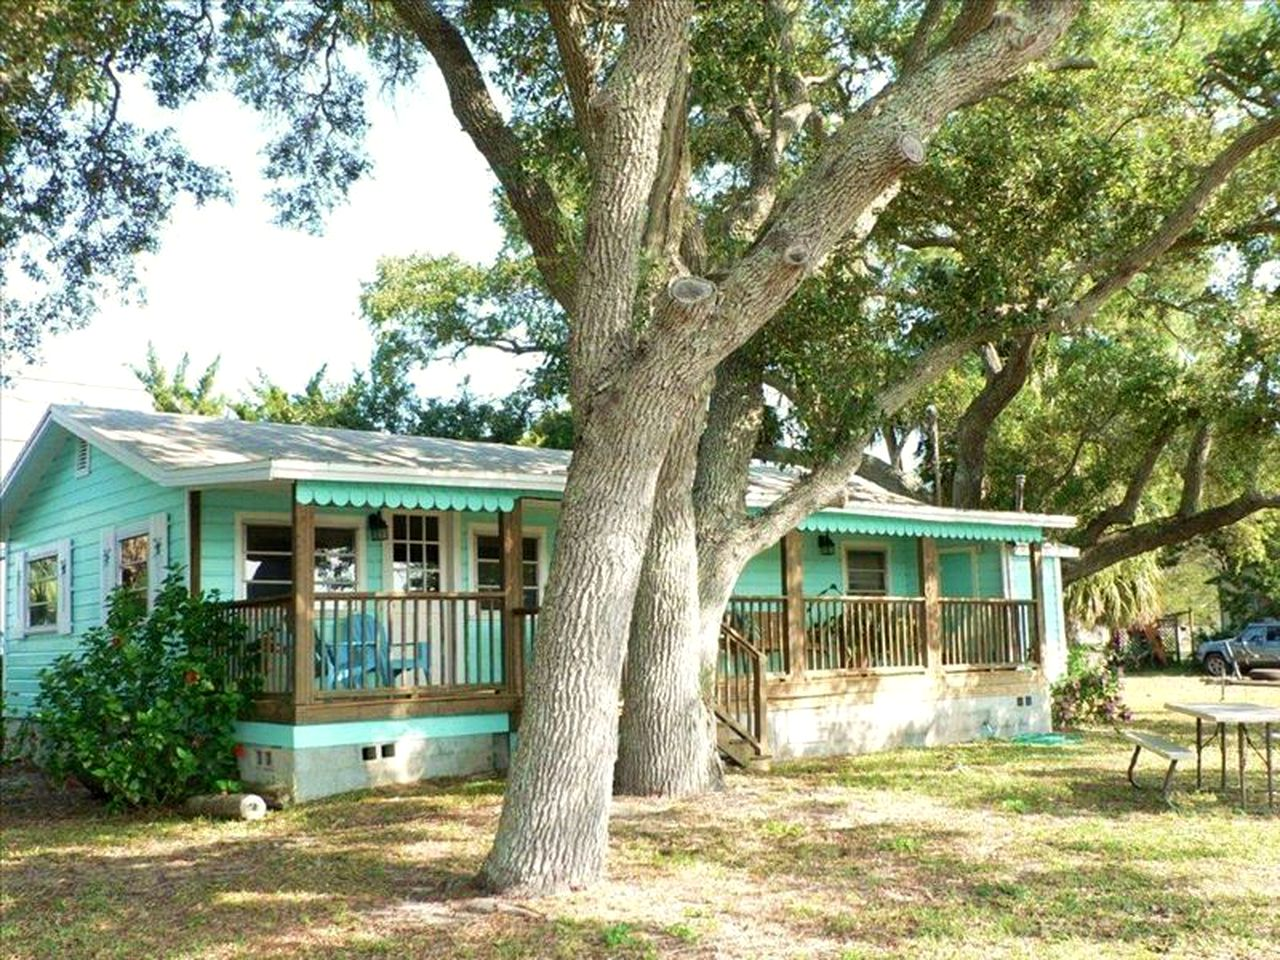 Cabins (Cedar Key, Florida, United States)